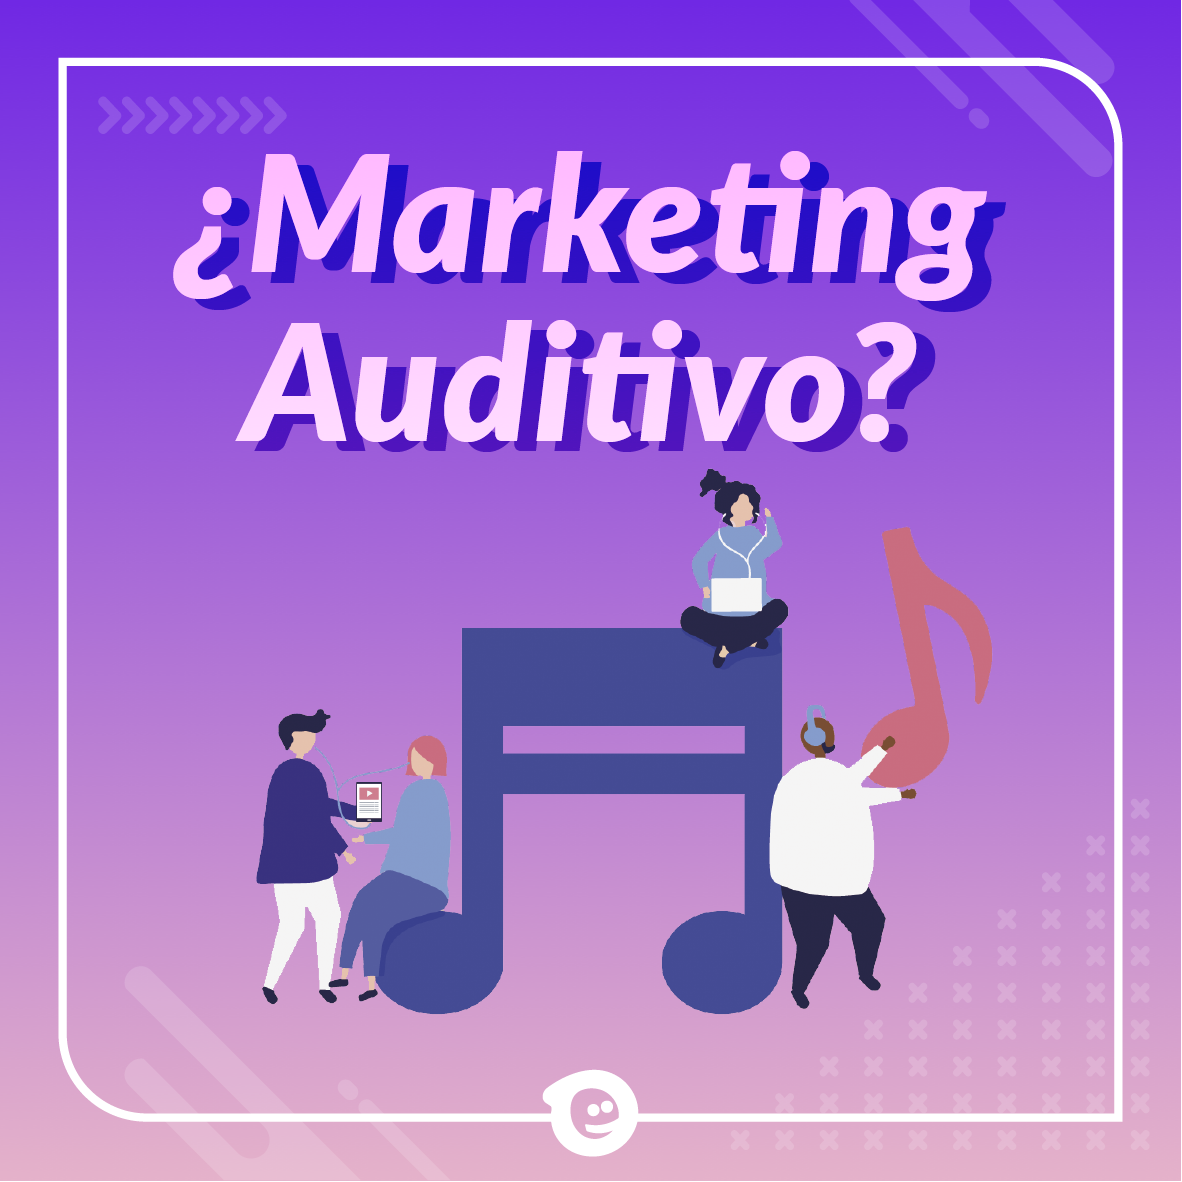 conoce el marketing auditivo